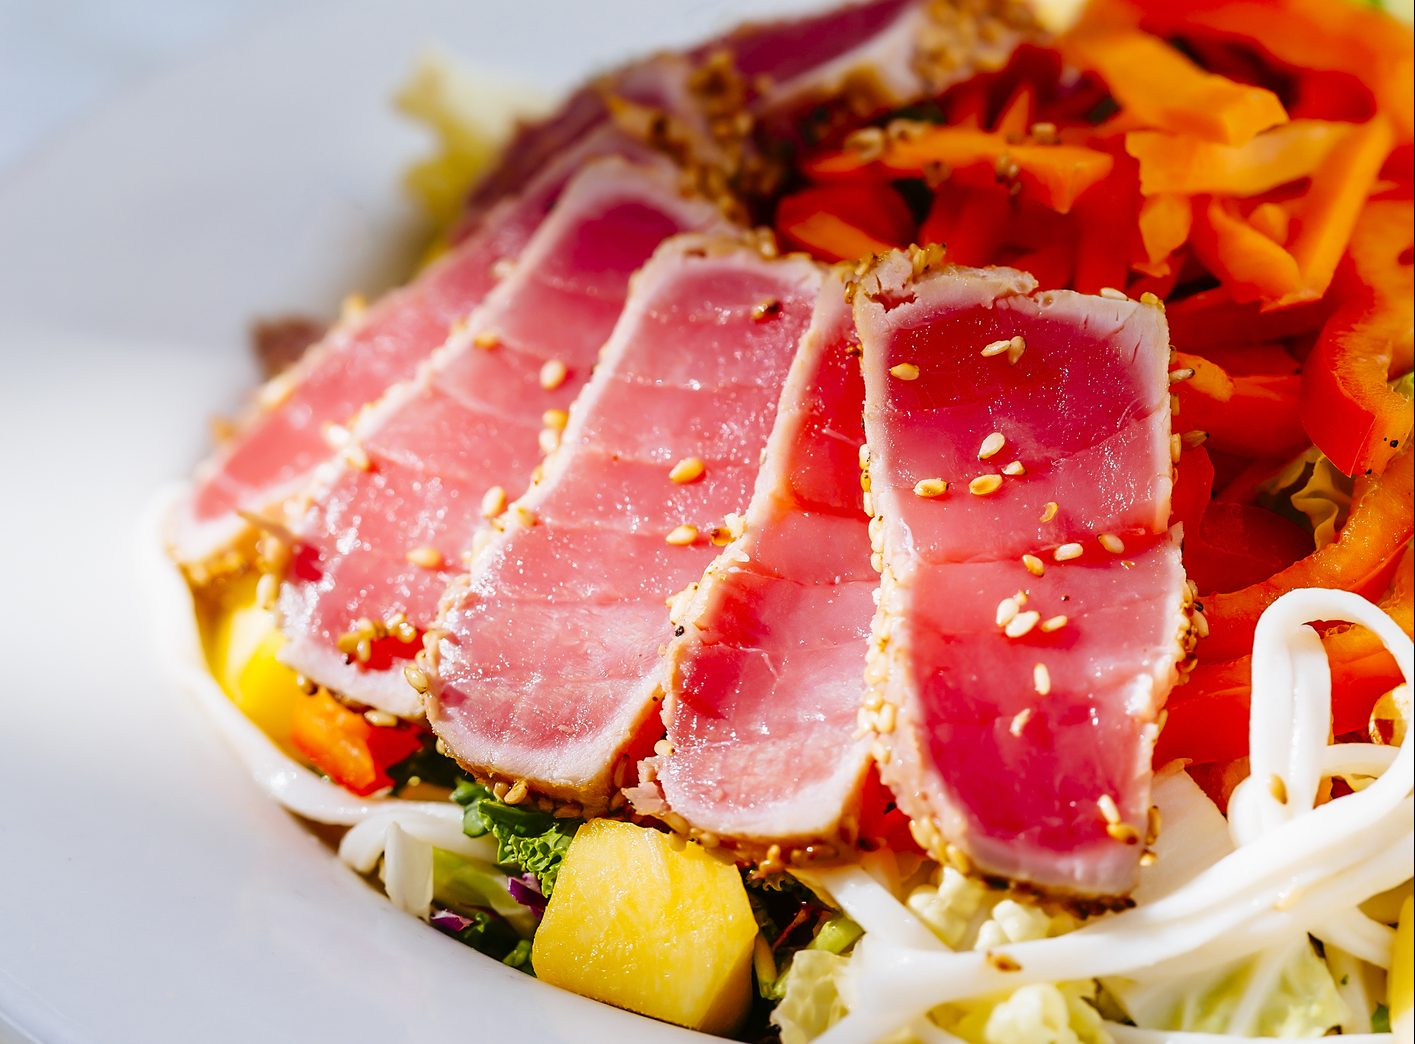 Plate of sliced tuna and salad